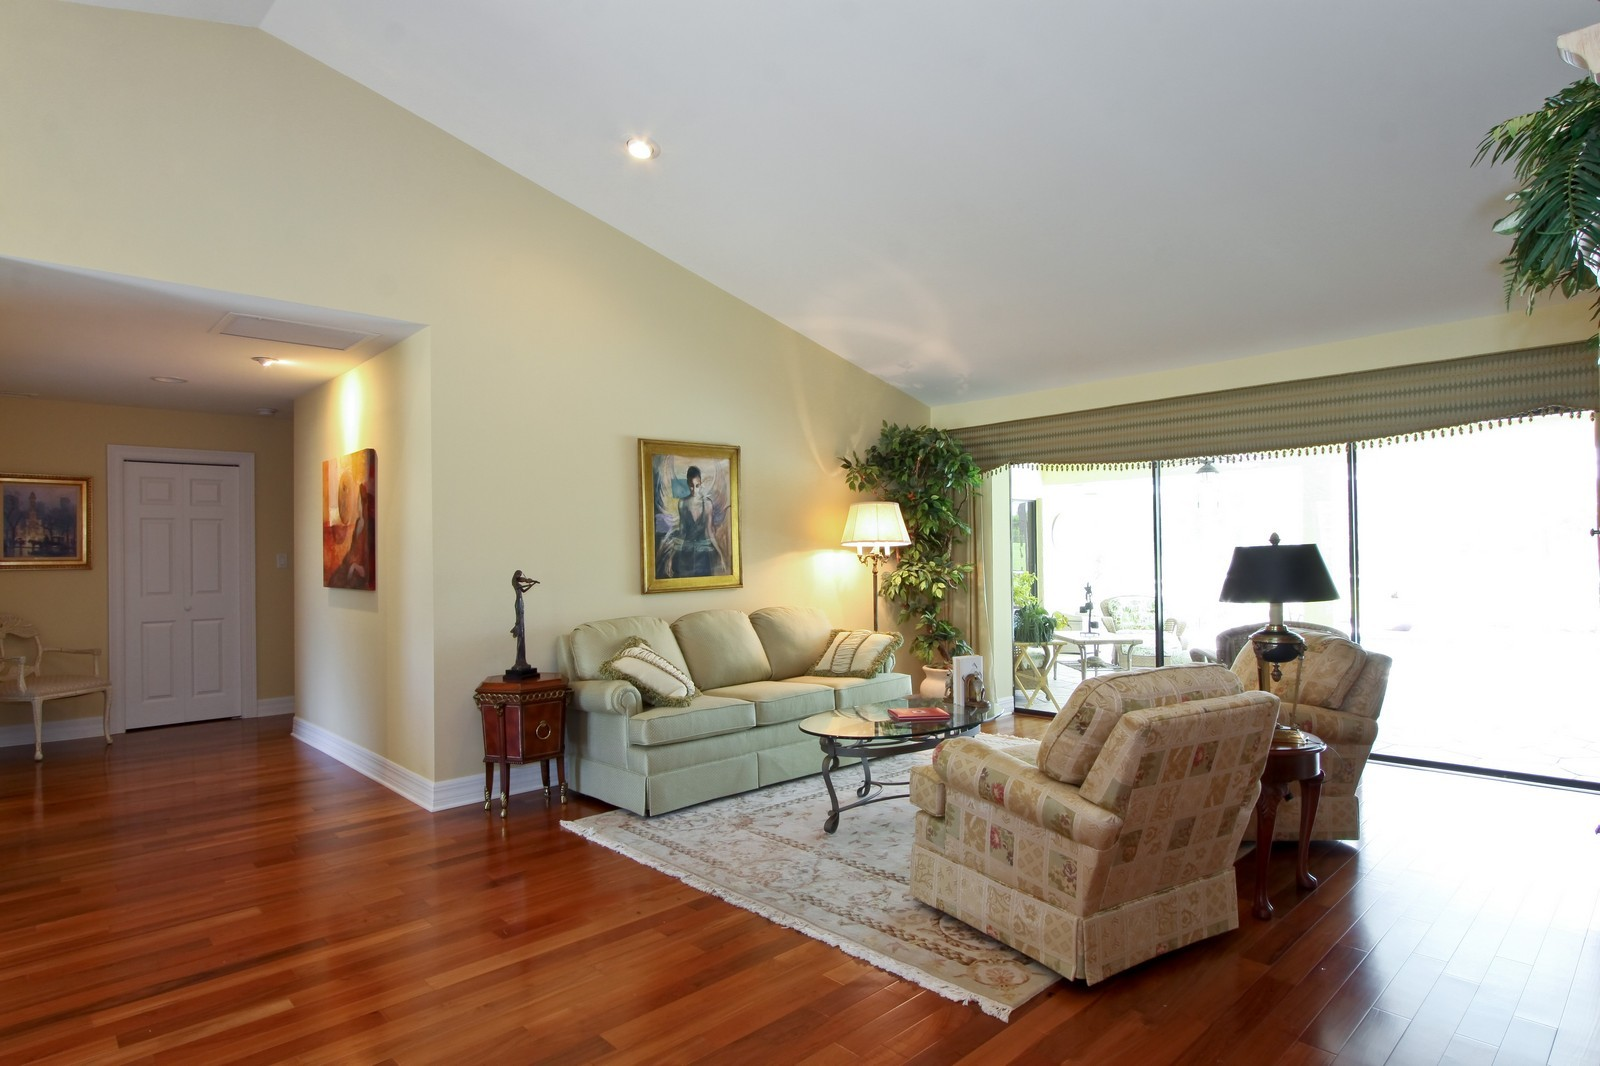 Real Estate Photography - 1986 Imperial GC Blvd, Naples, FL, 34110 - Living Room